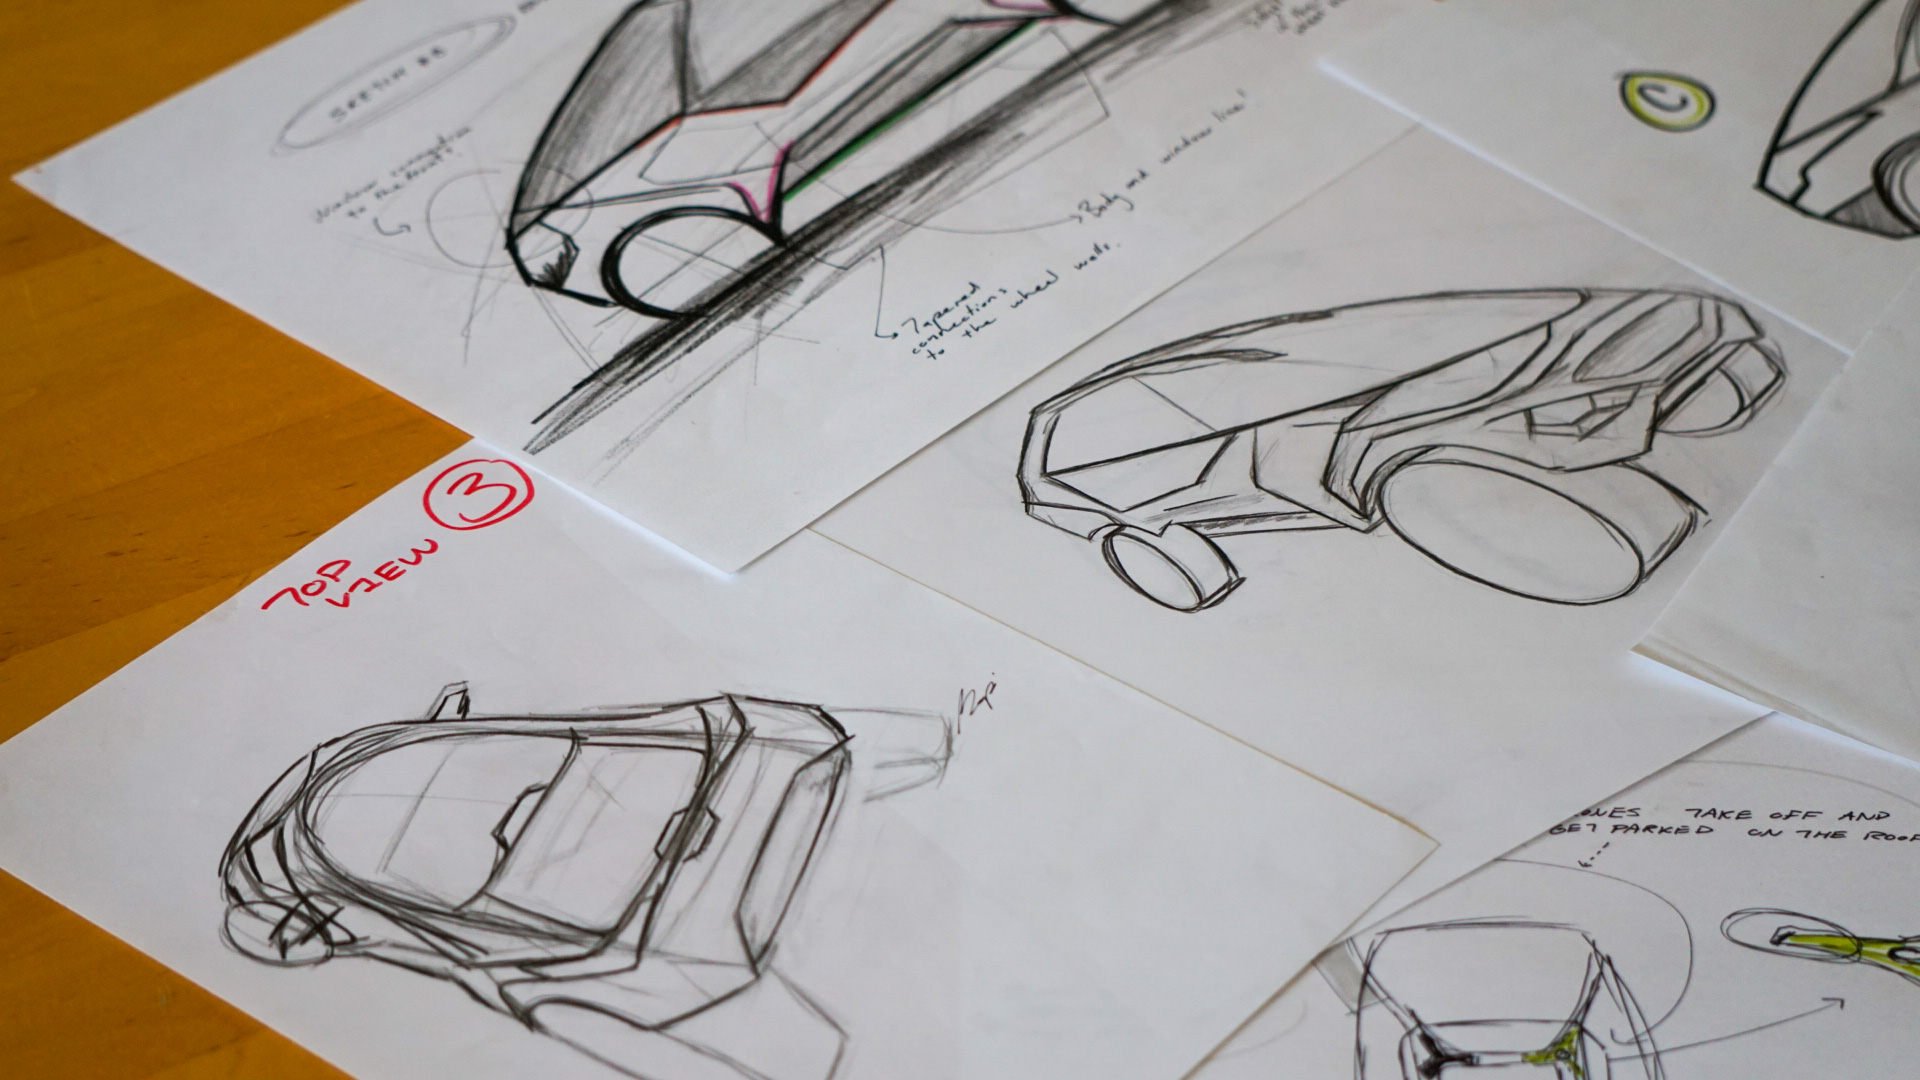 Initial creative process sketches of car design